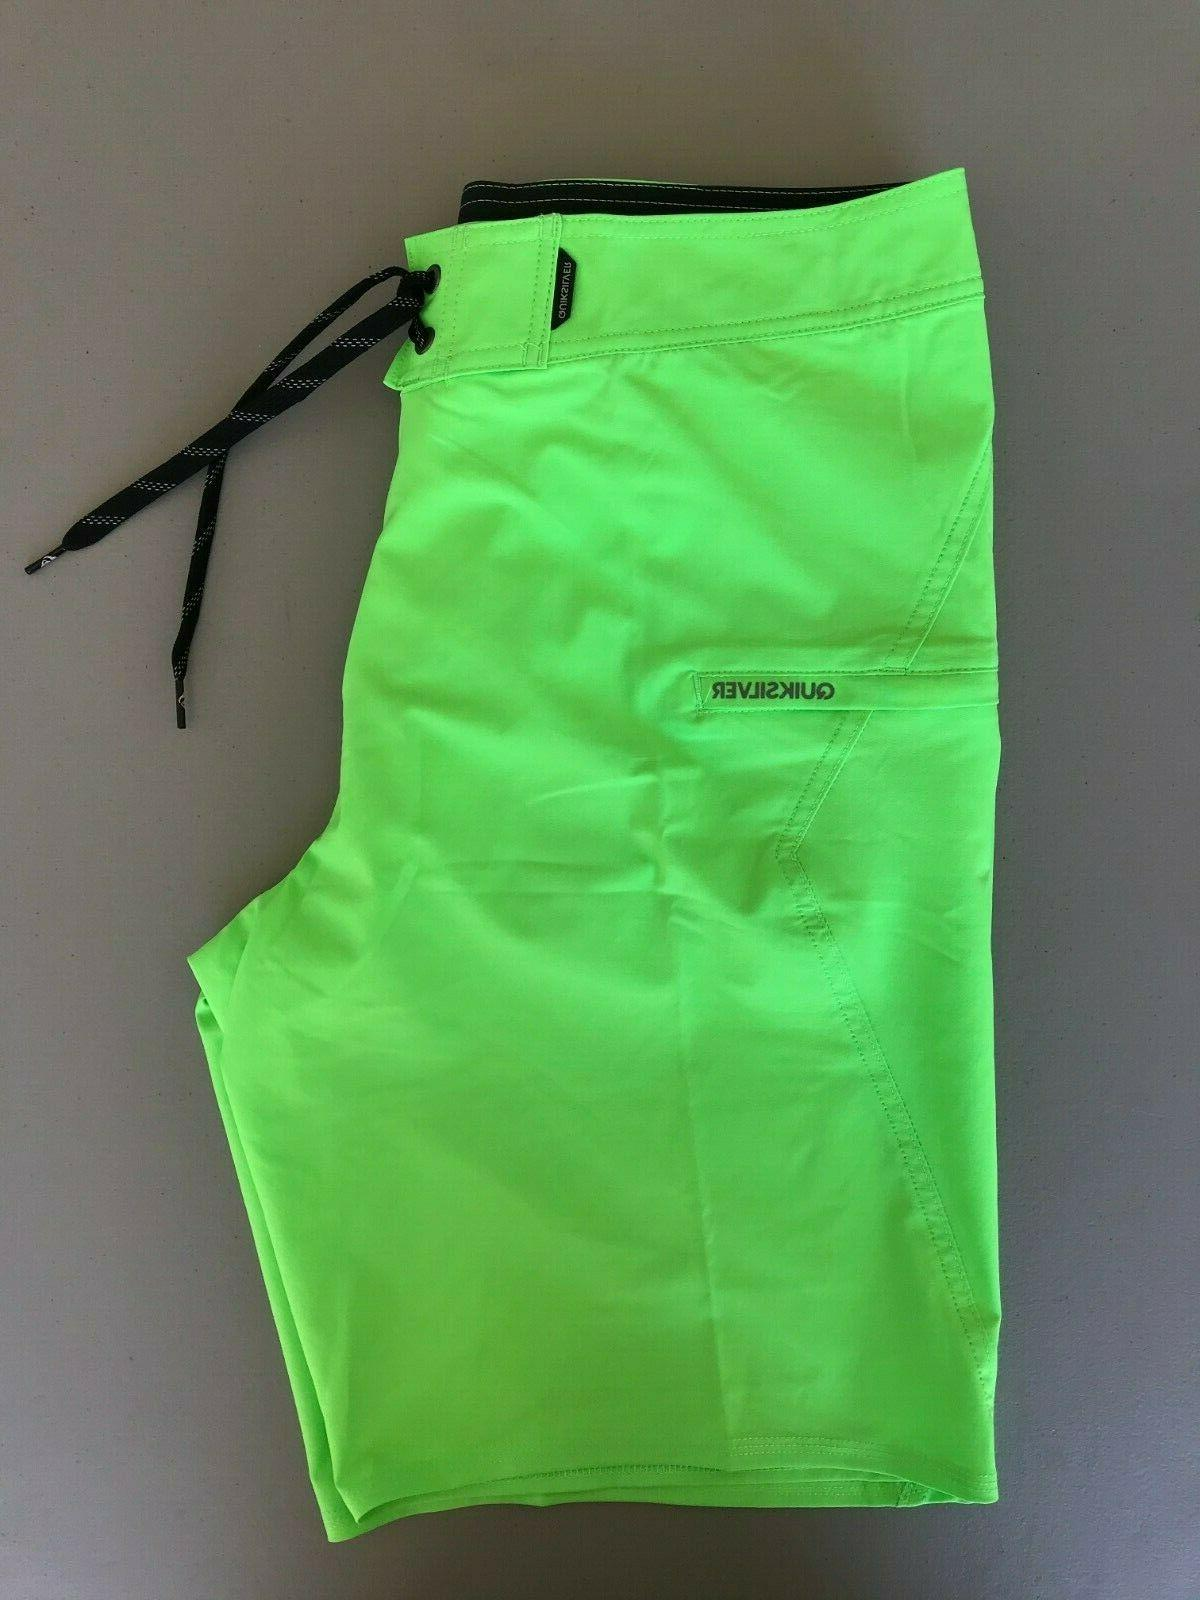 "$50 Size Everyday 21"" Board Shorts Swim Summer"